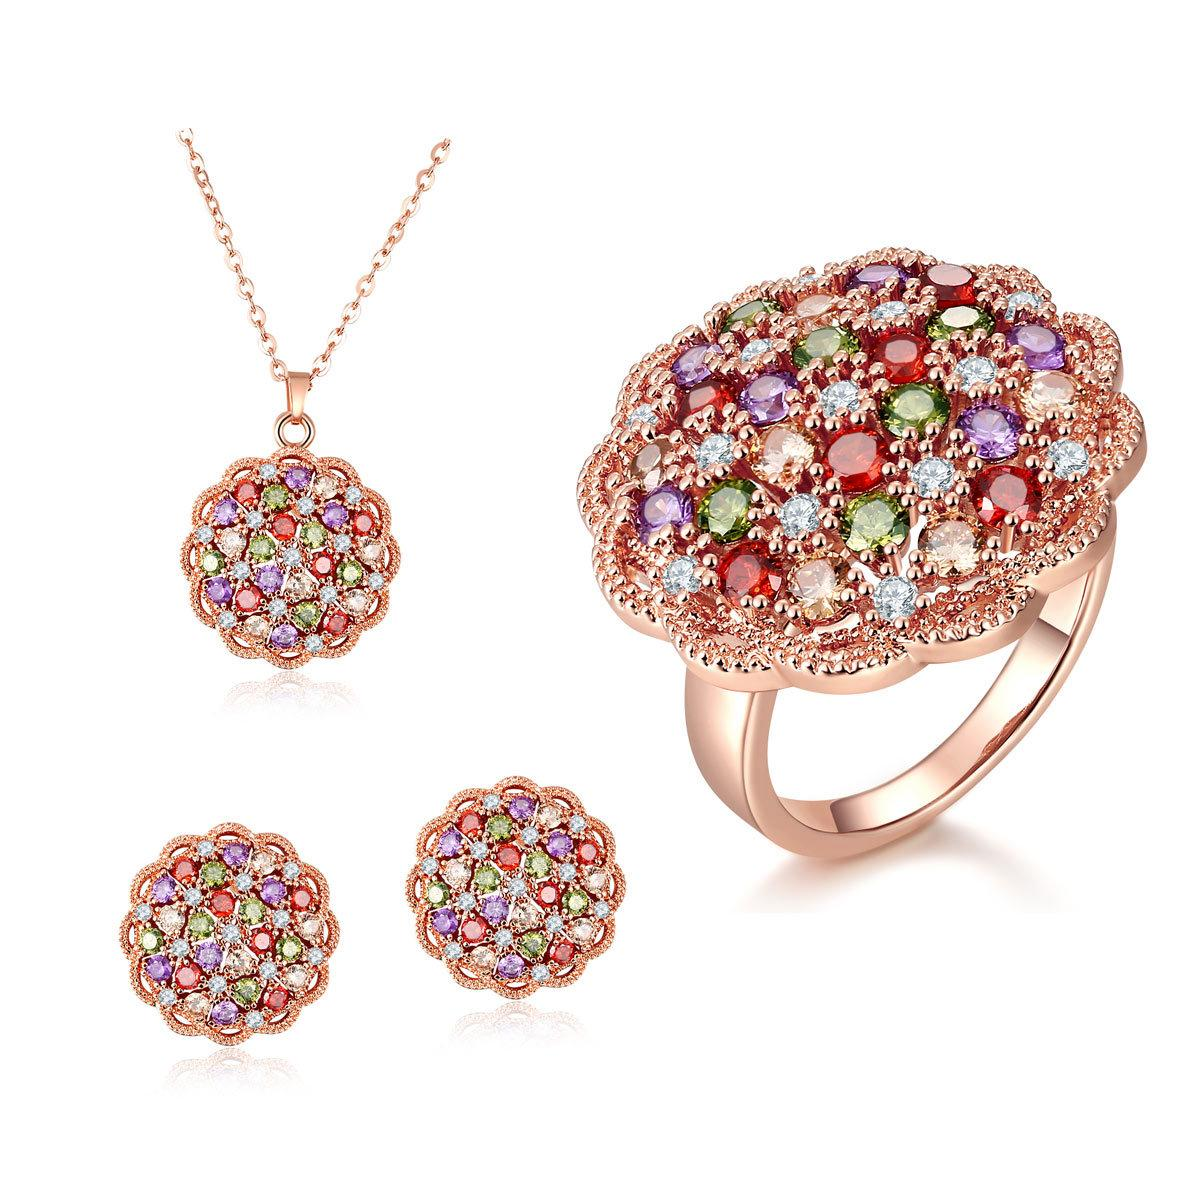 2018 Round Flower Pattern Rose Gold Plated Jewelry Set For Women